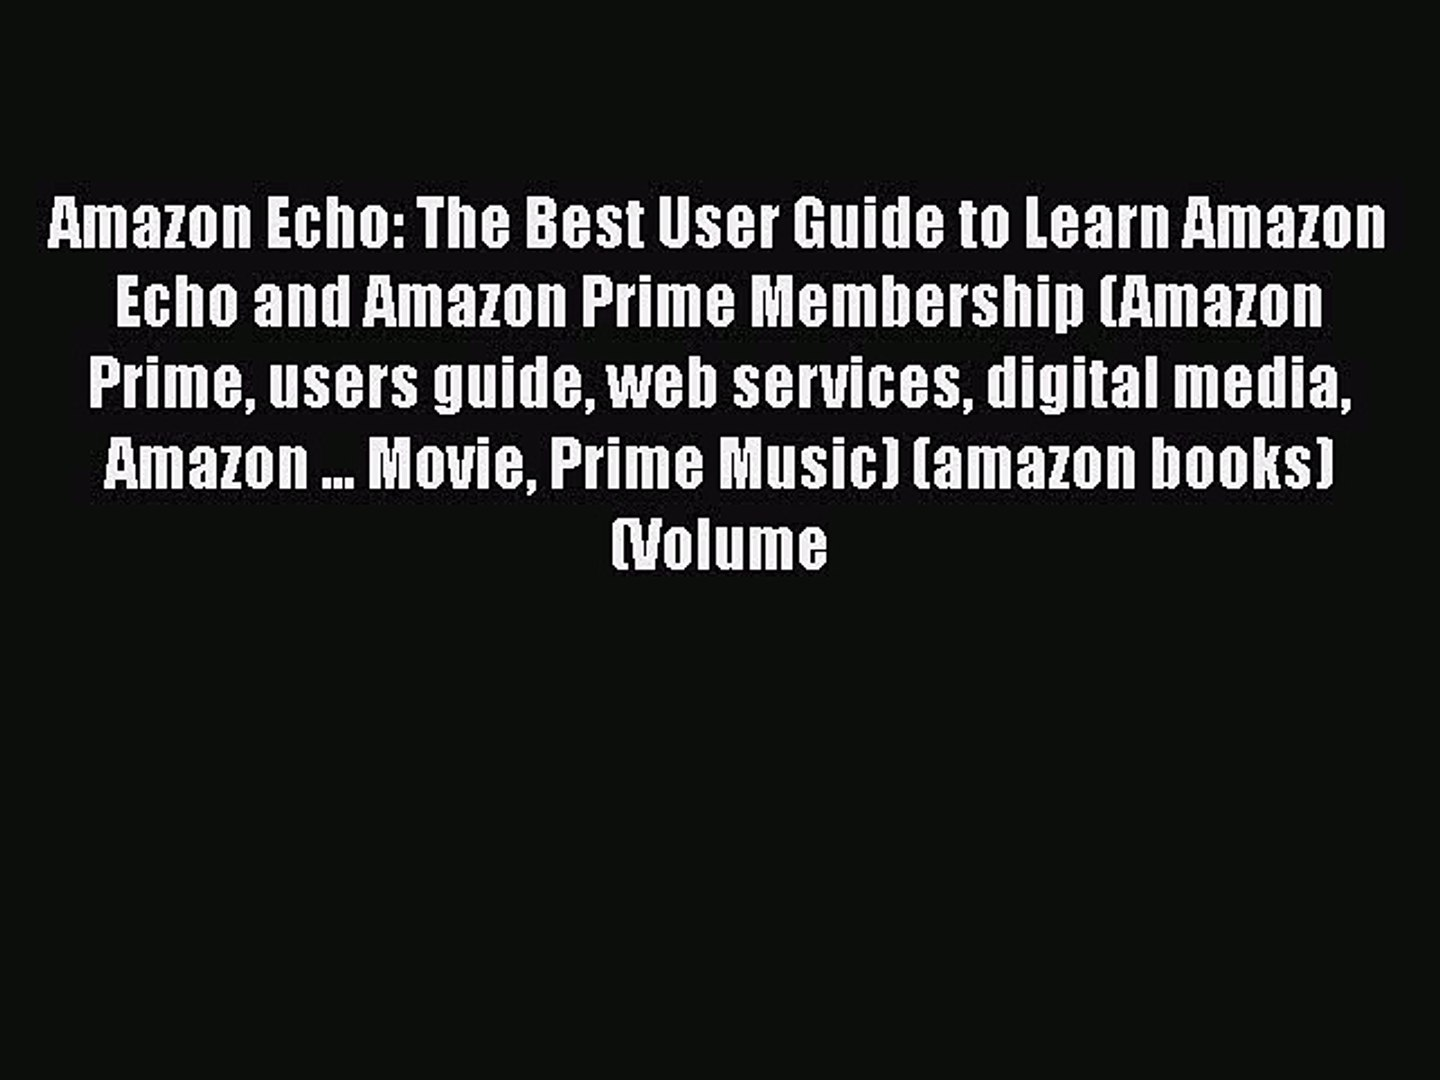 Download Amazon Echo: The Best User Guide to Learn Amazon Echo and Amazon Prime Membership